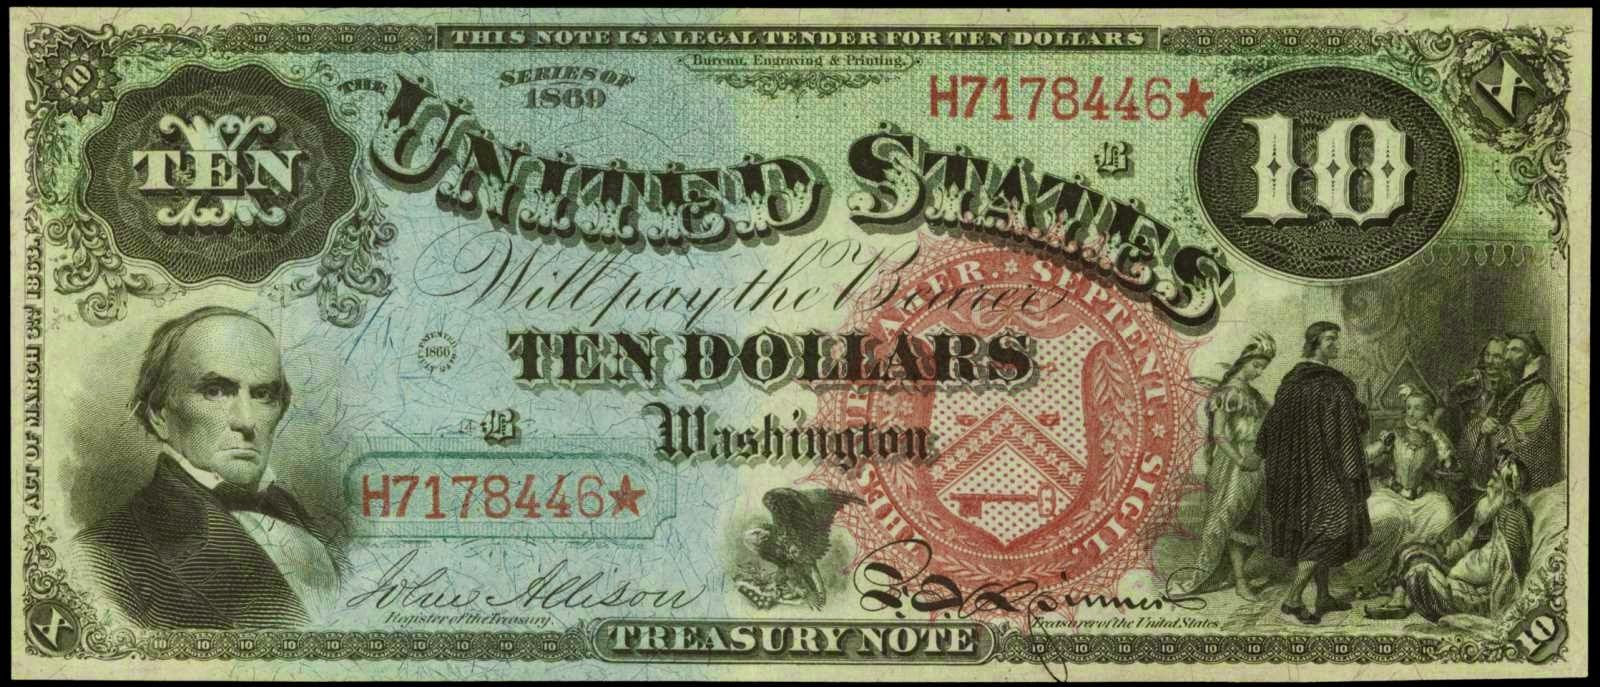 1869 10 Dollar bill note Rainbow Jackass